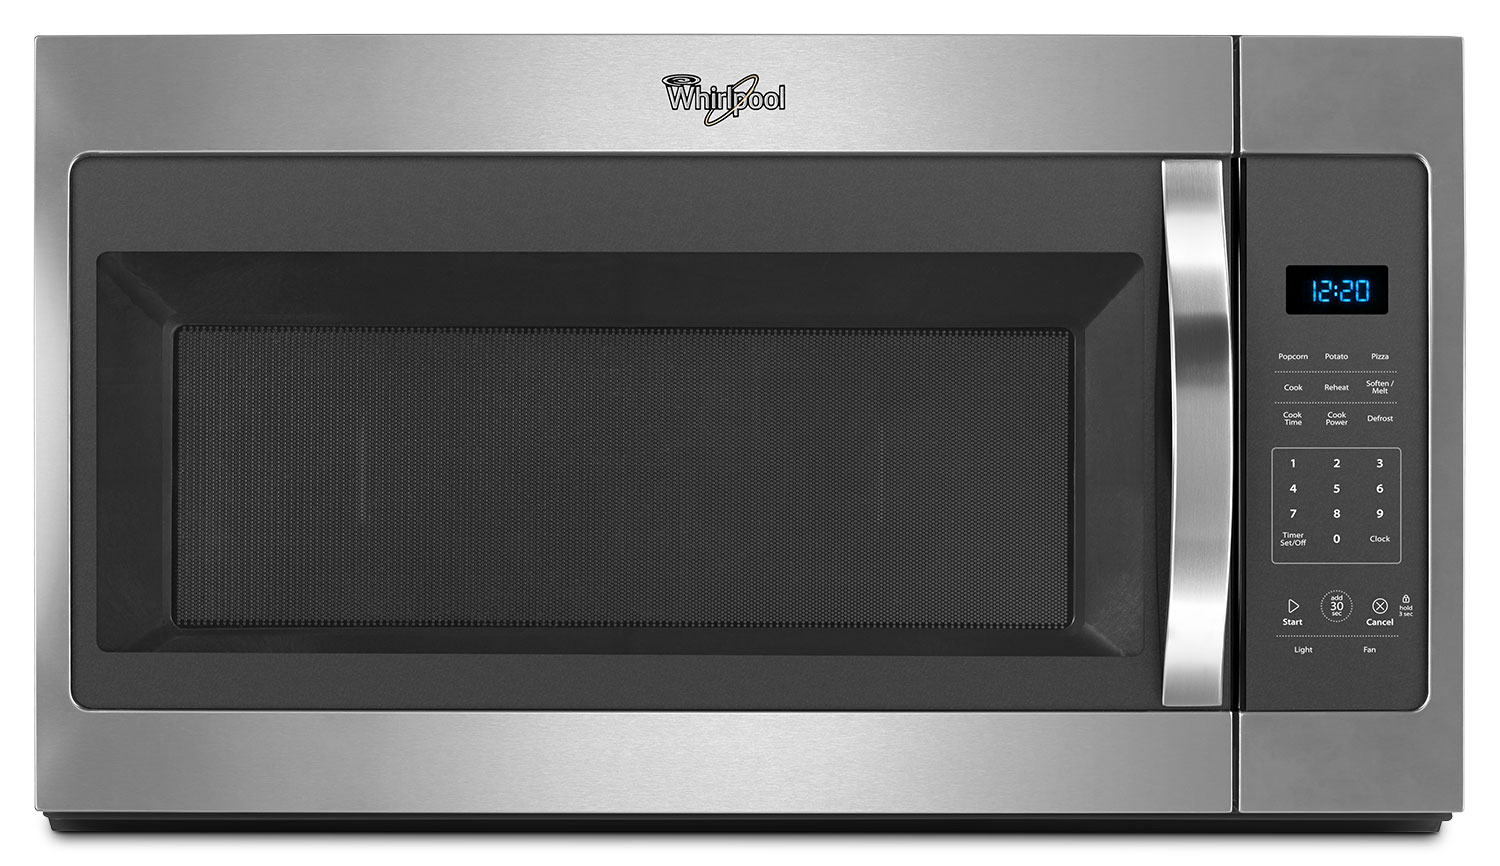 Cooking Products - Whirlpool Stainless Steel Over-the-Range Microwave (1.7 Cu. Ft.) - YWMH31017FS